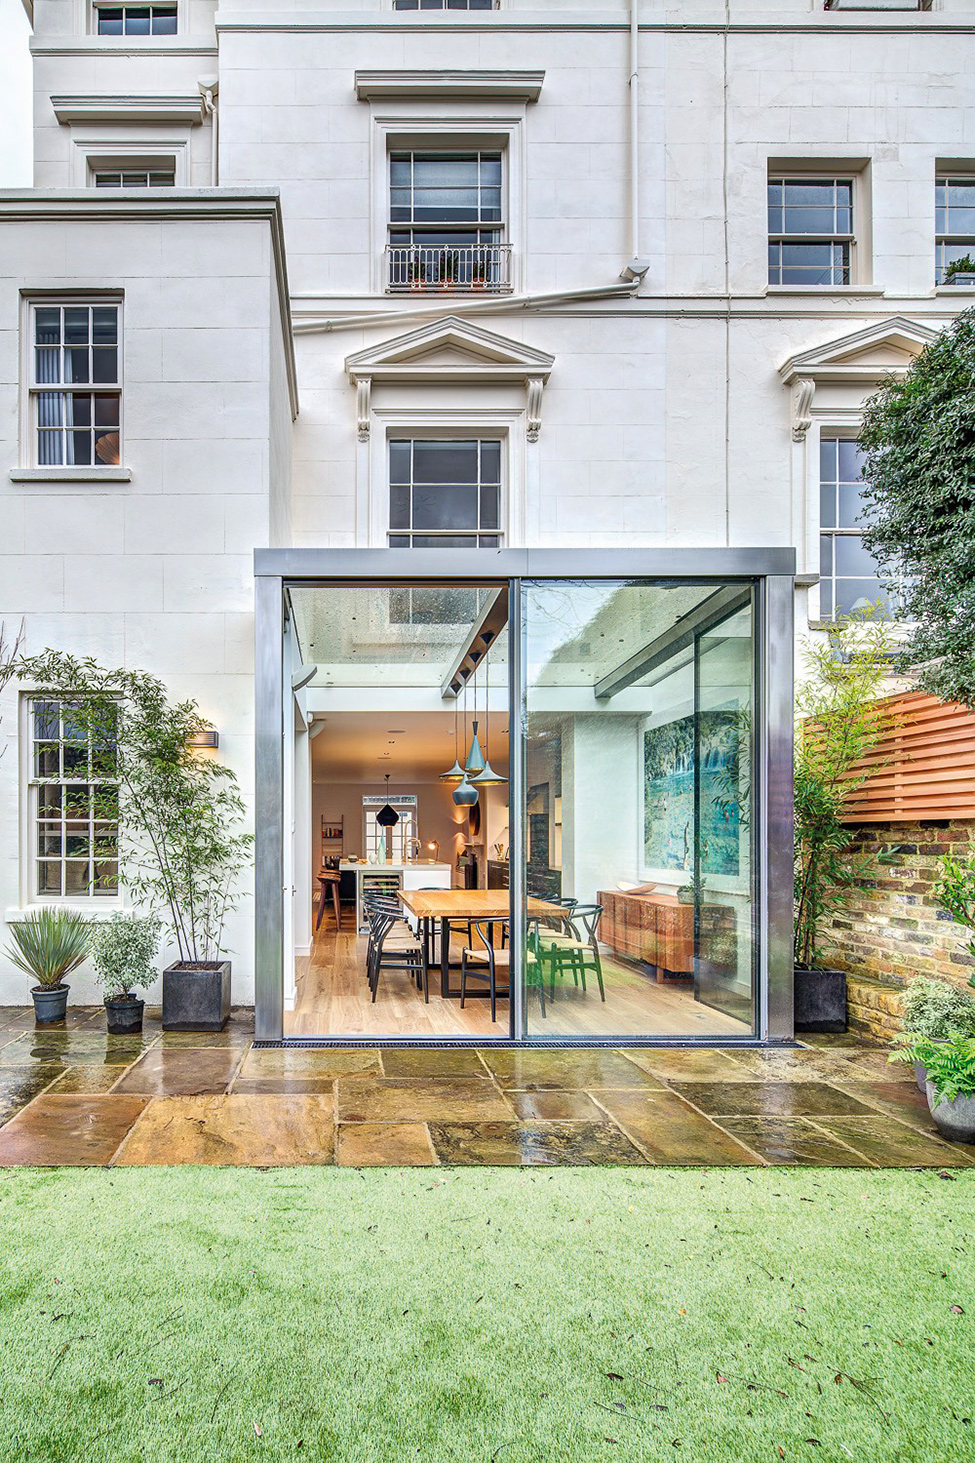 renovate old townhouse in london to modern style (1)